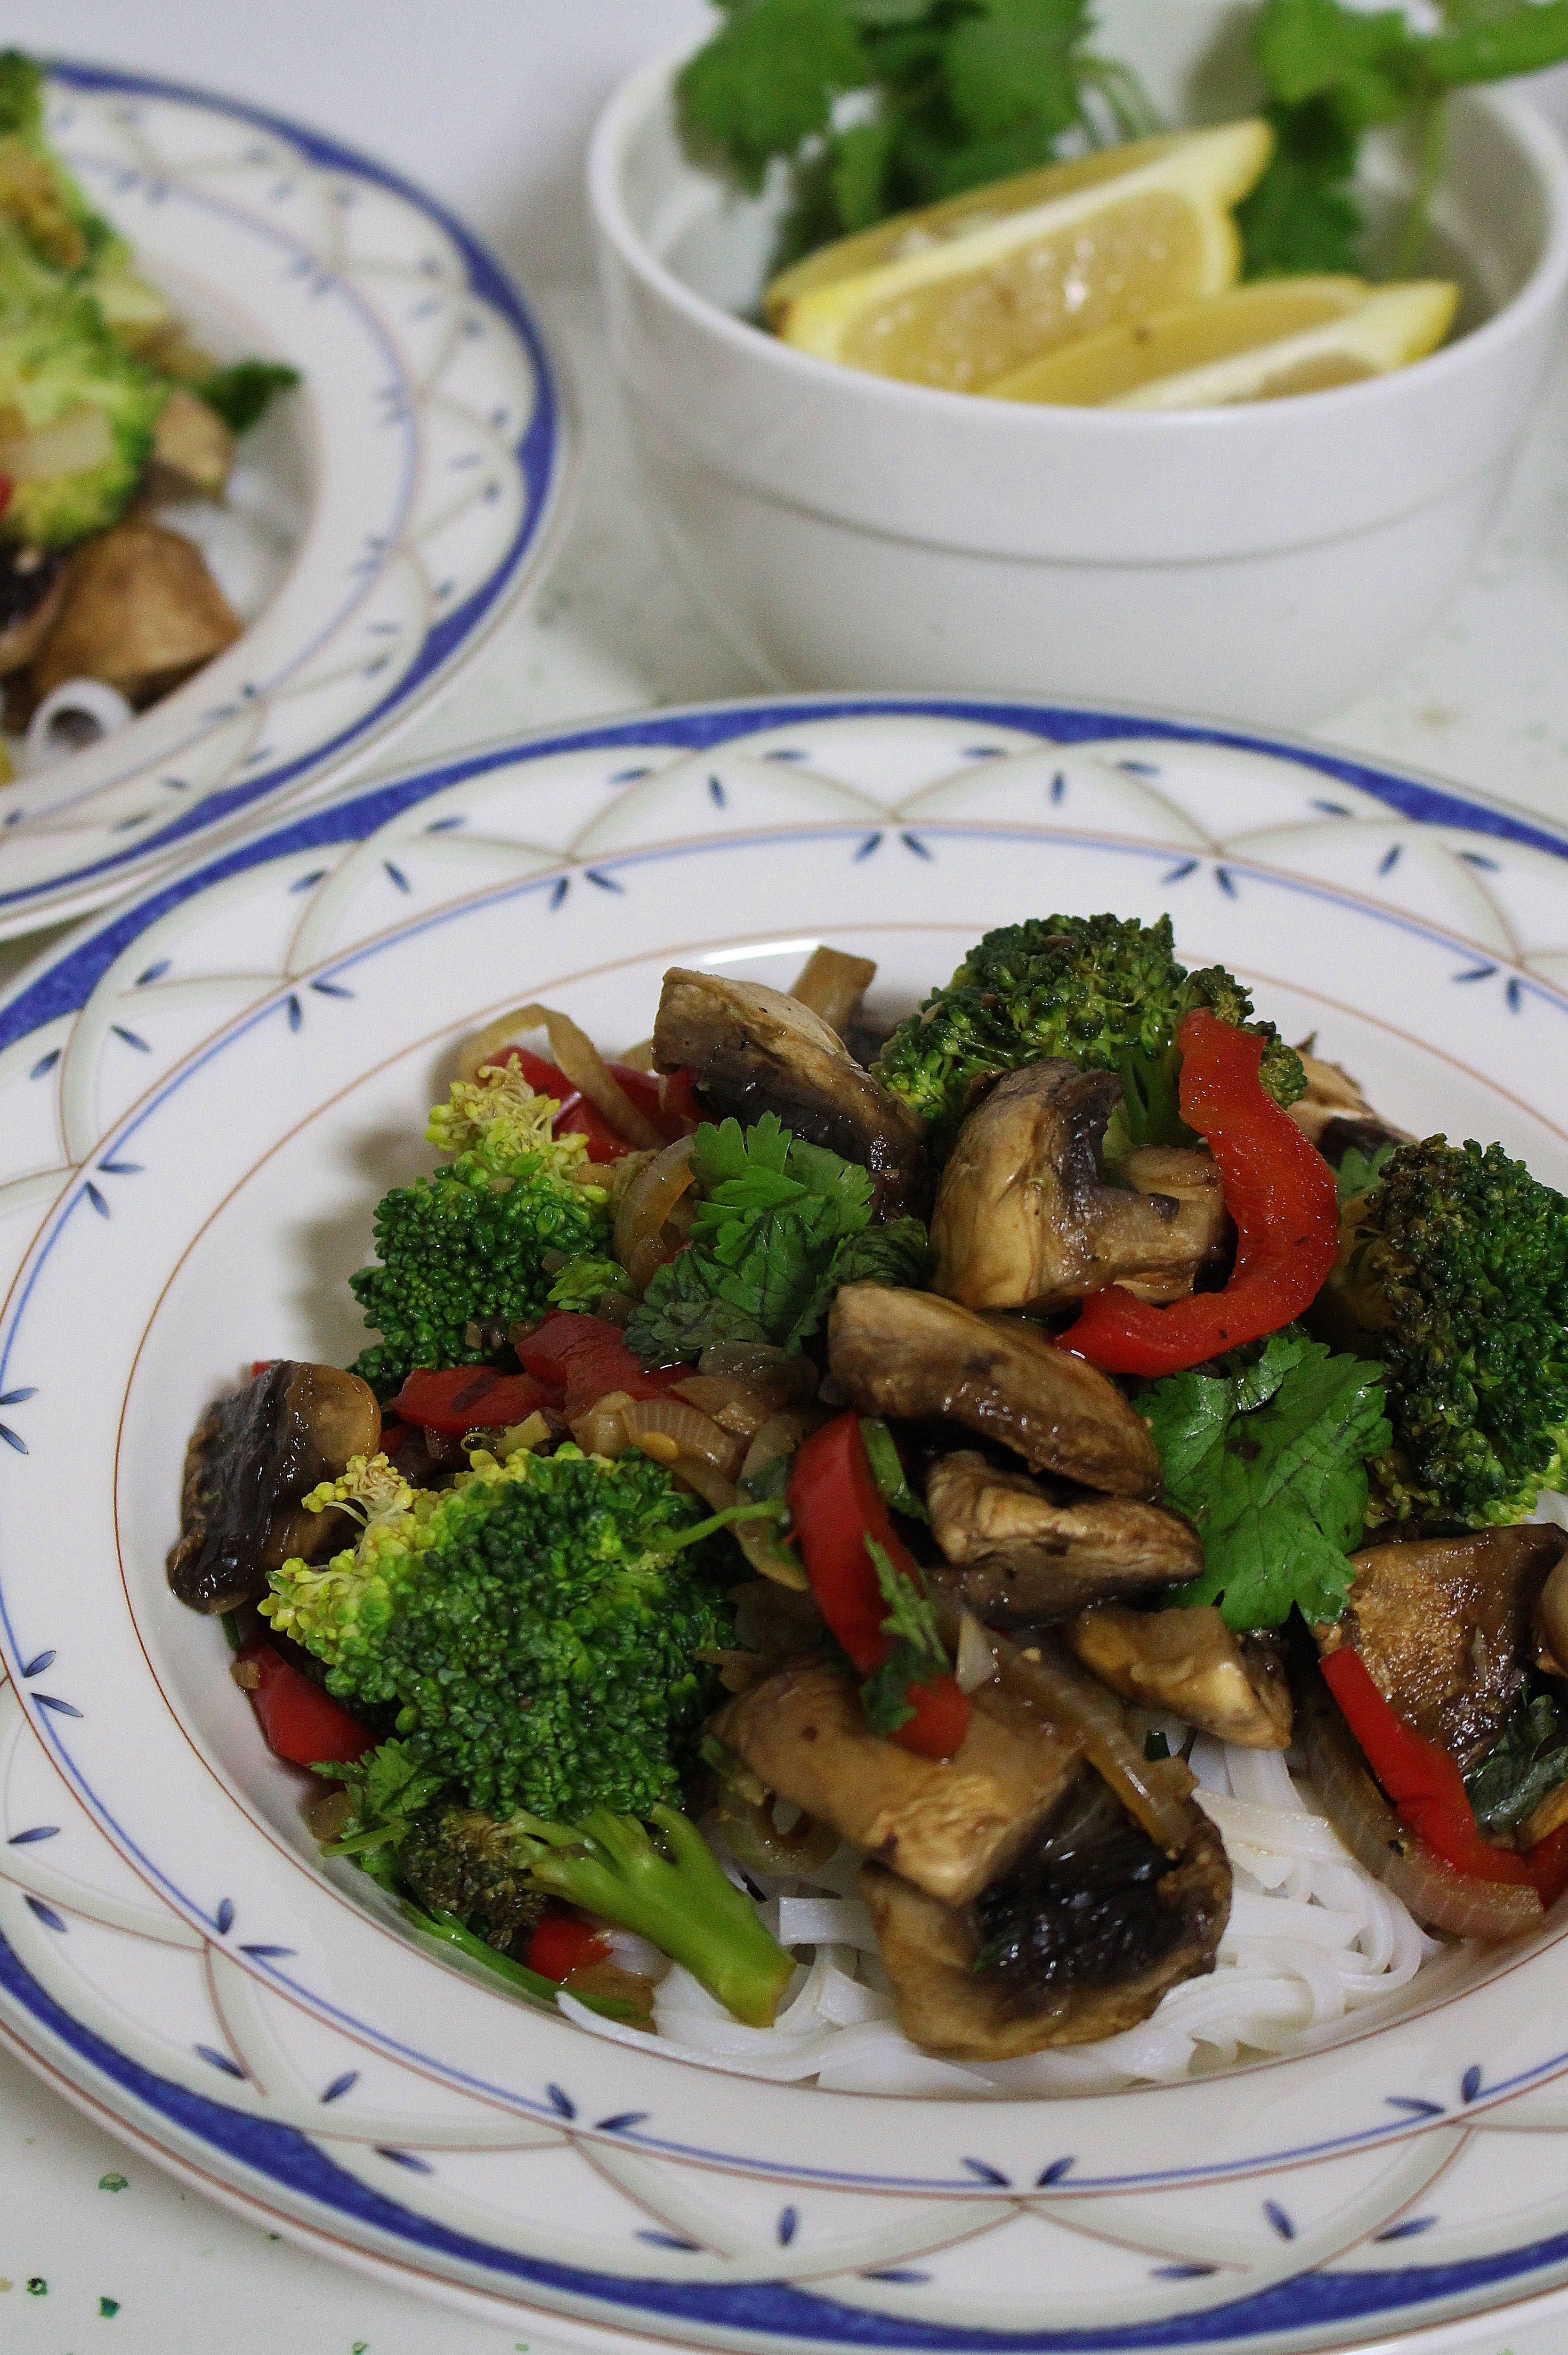 Spicy Mushroom and Broccoli Stir Fry | Thoroughly Nourished Life